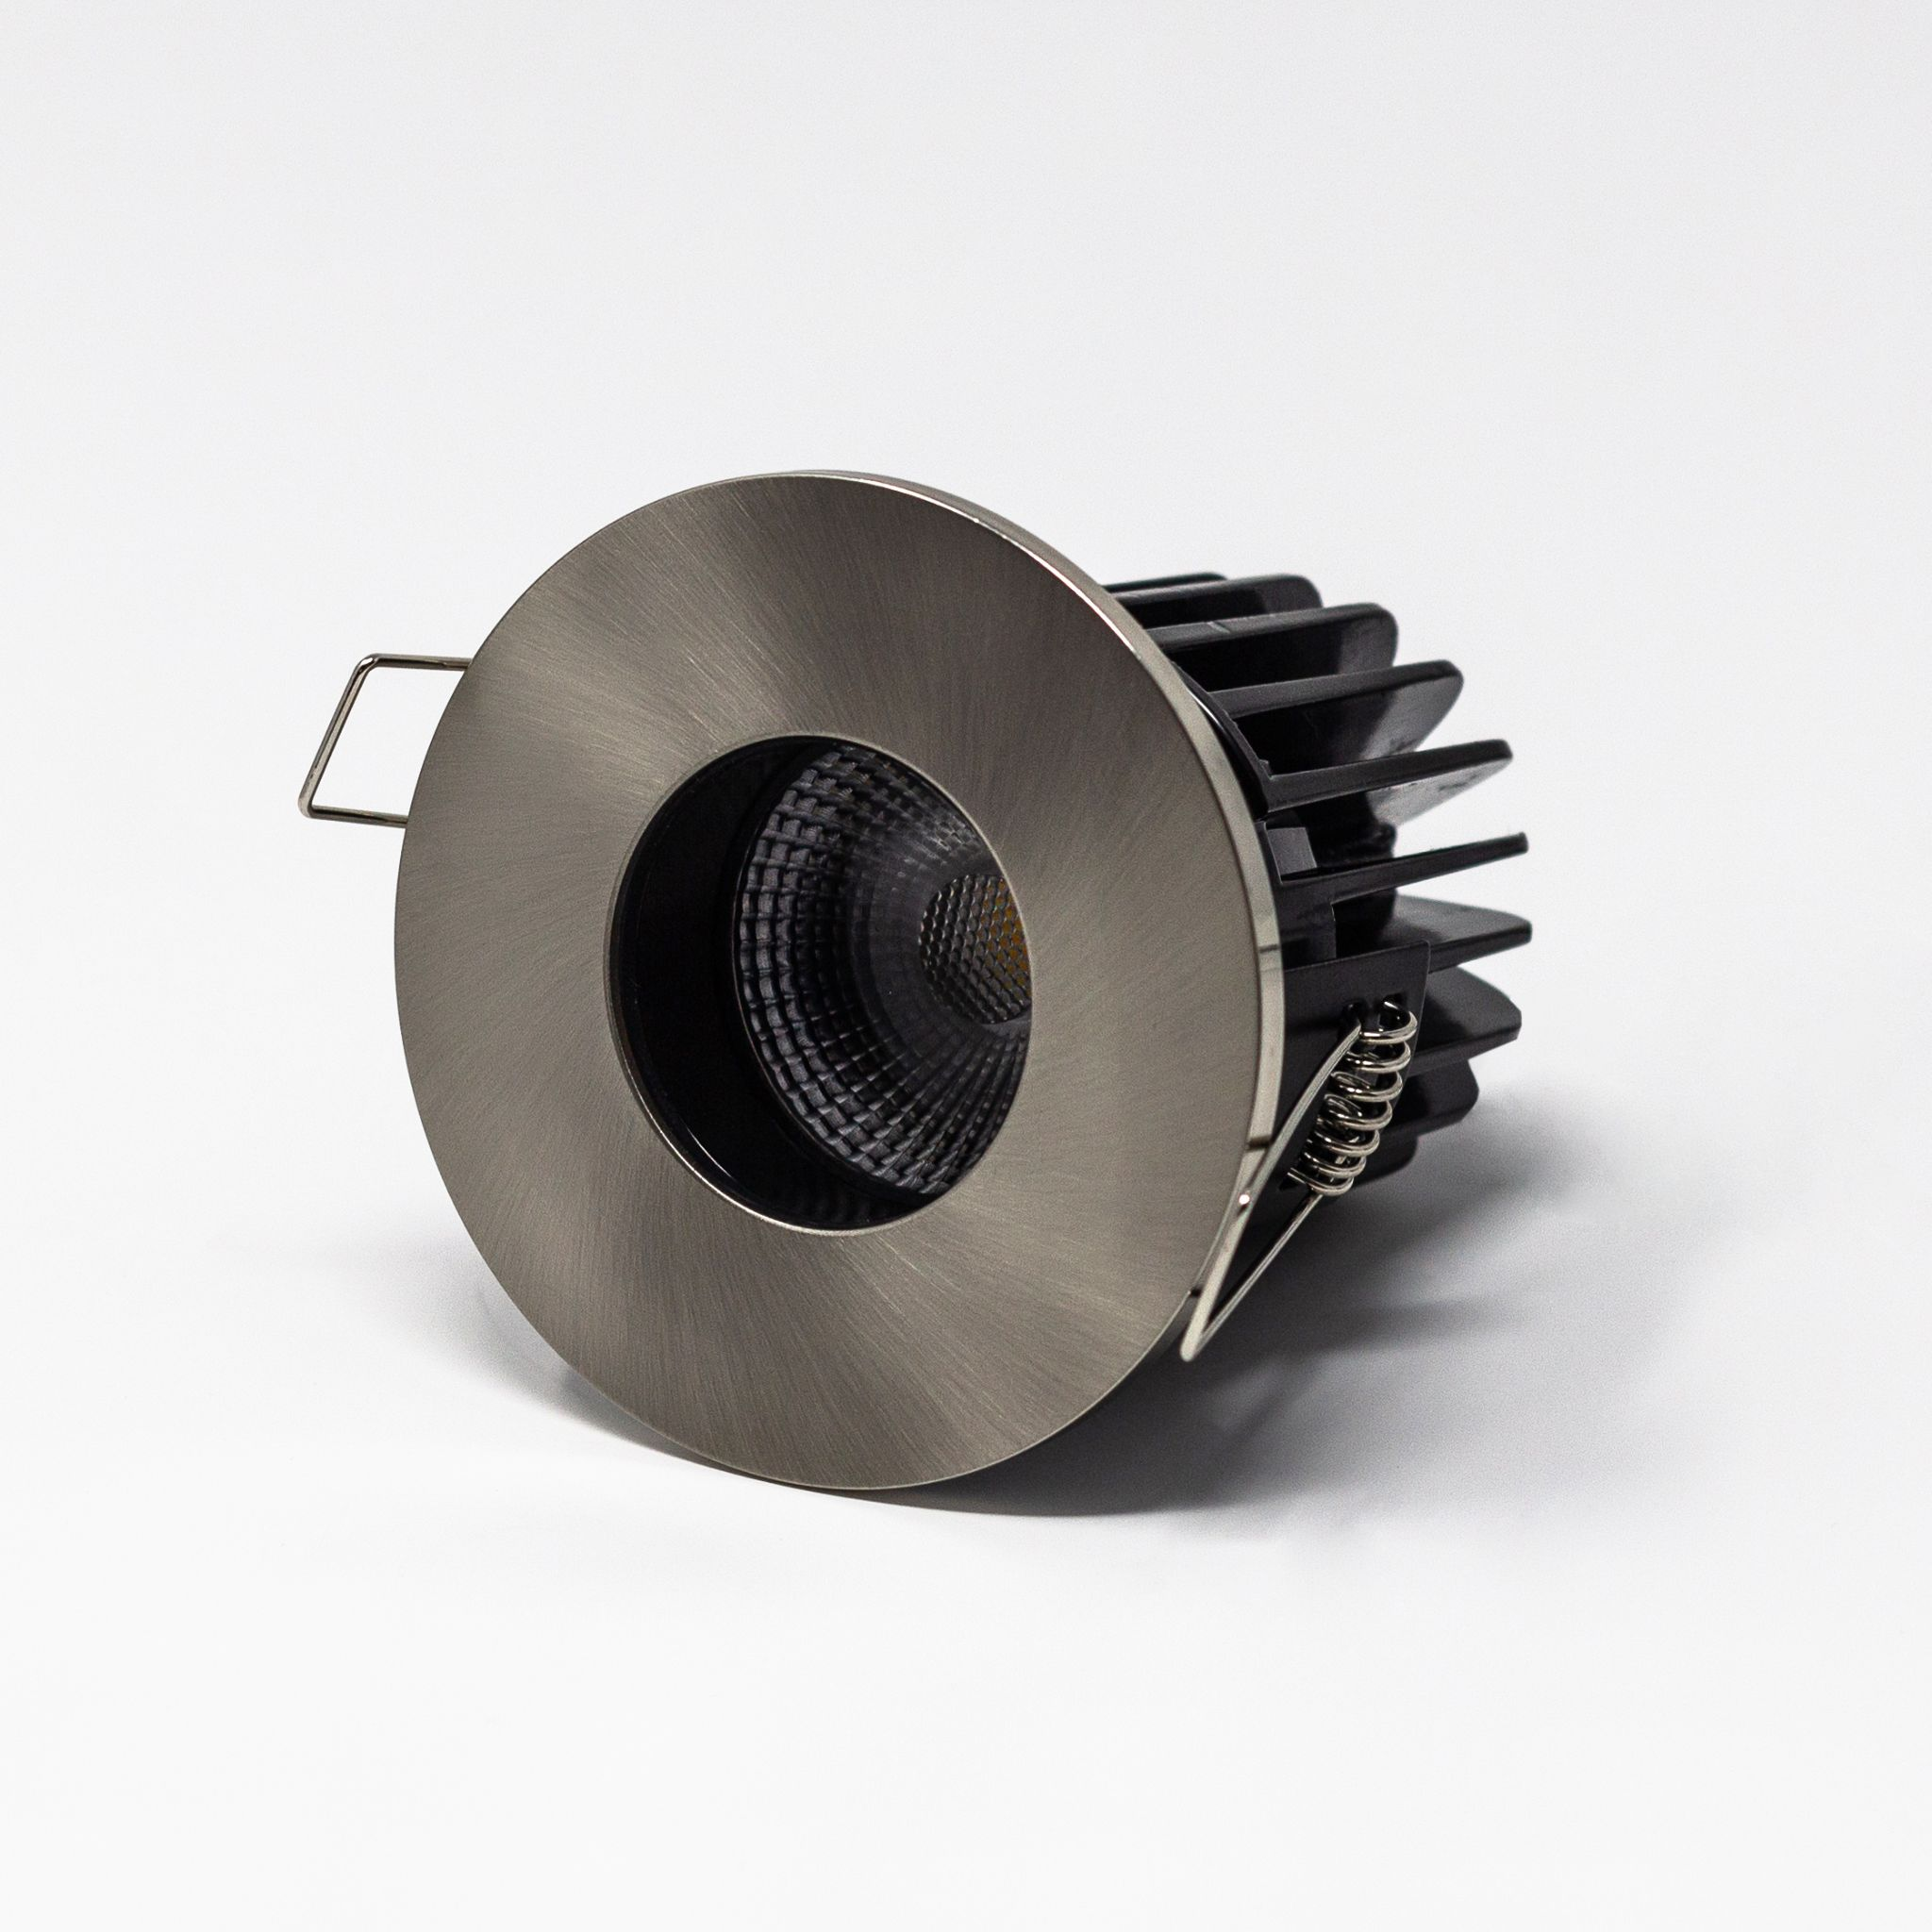 83mm diameter 8w Fire Rated Round Fixed Low Glare  Downlight - IP65 rated